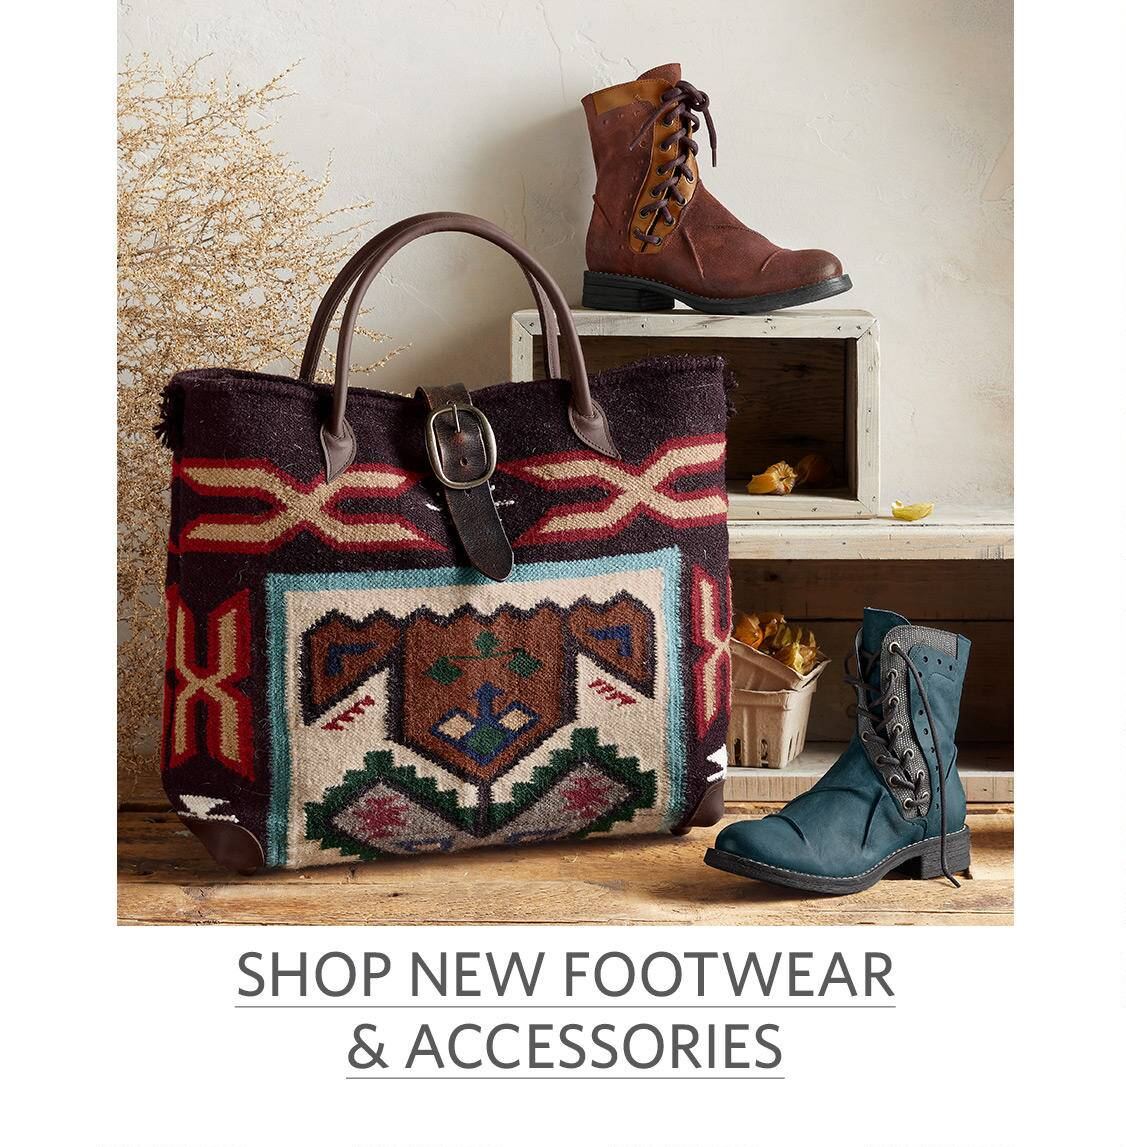 New Footwear and Accessories